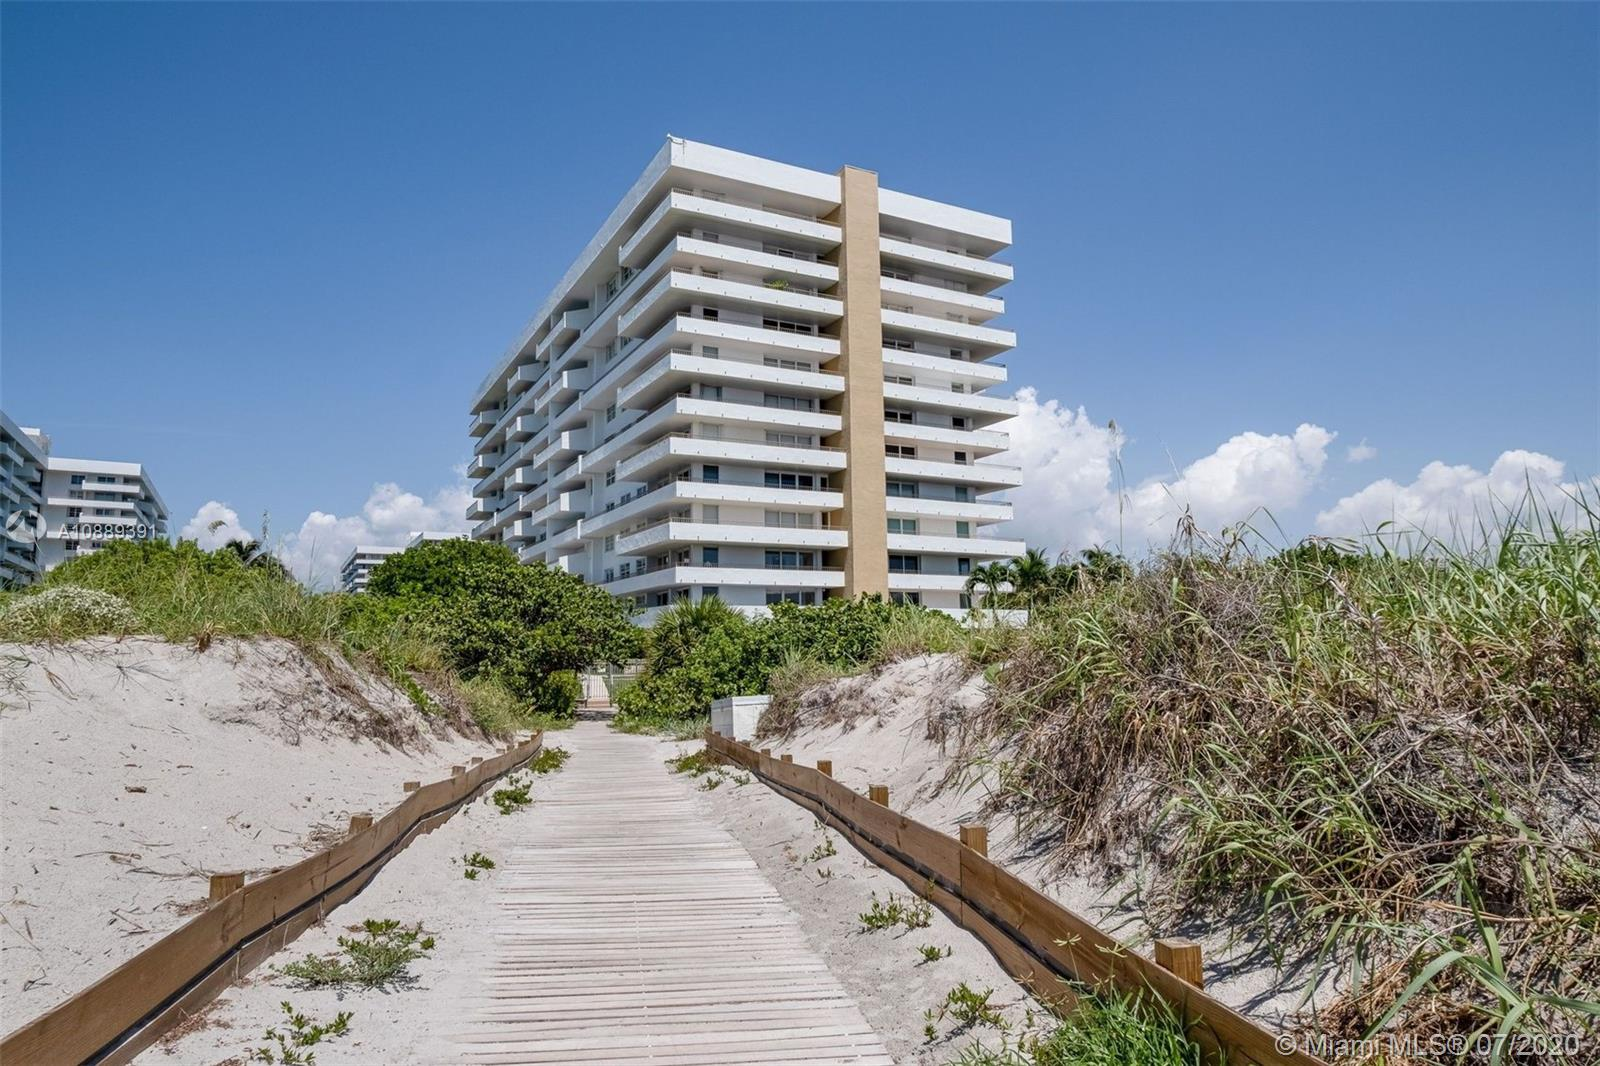 Commodore Club East #102 - 177 Ocean Lane Dr #102, Key Biscayne, FL 33149